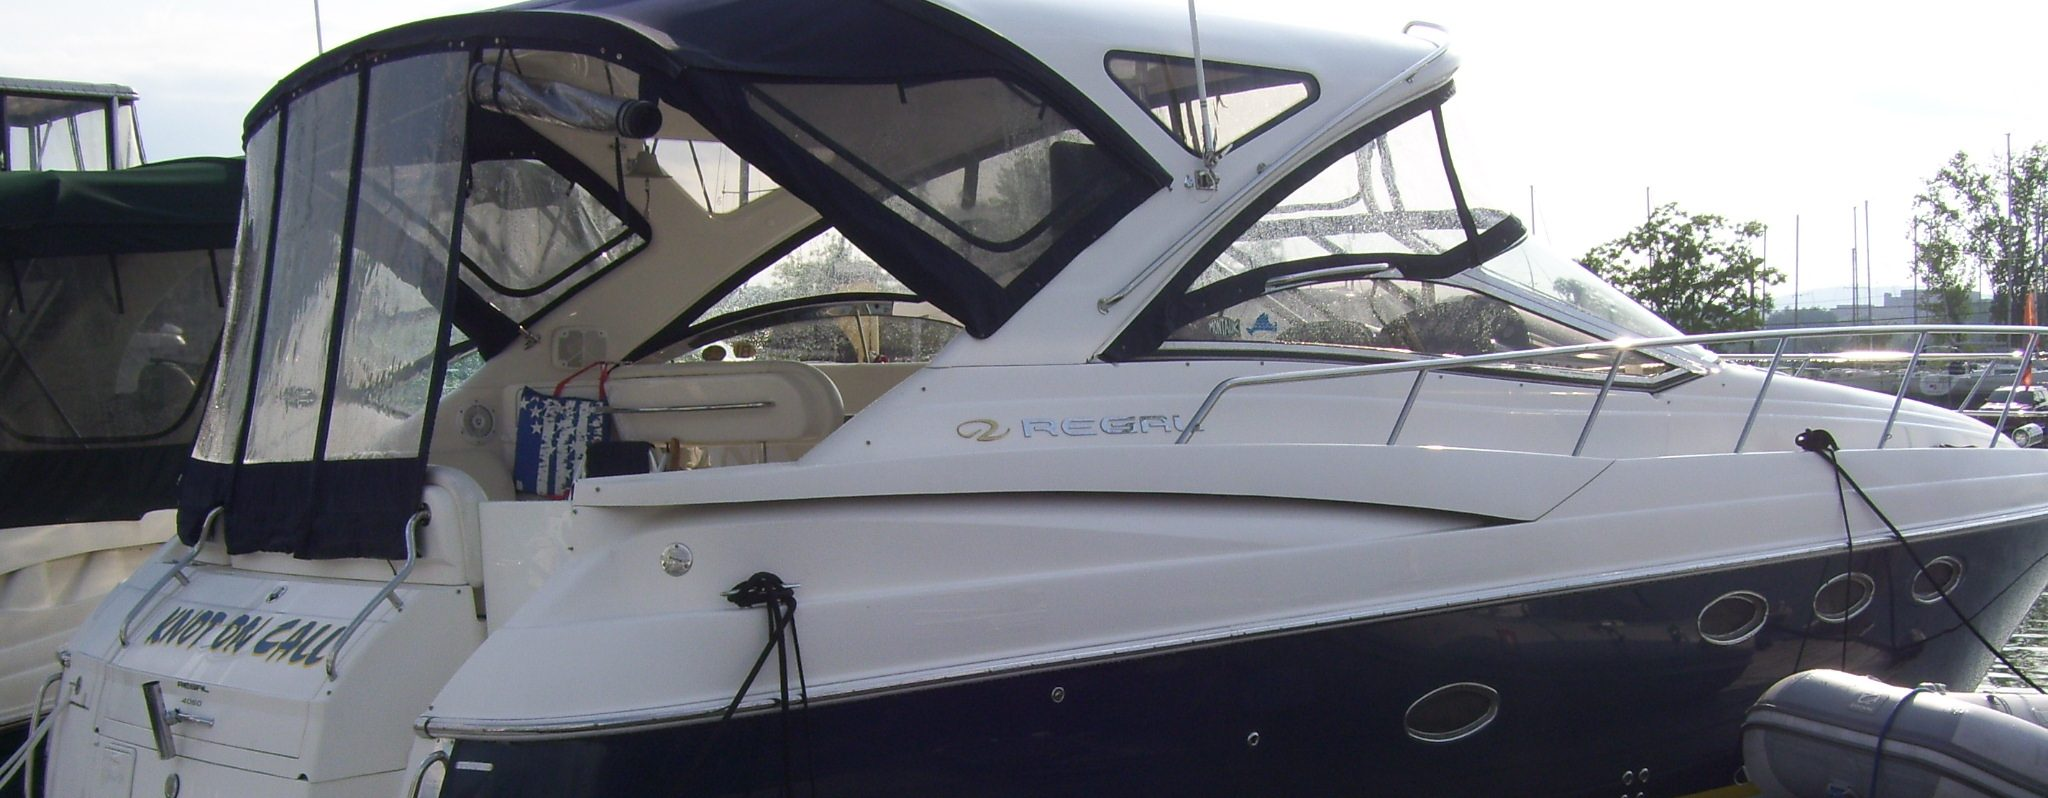 TS Regal 28